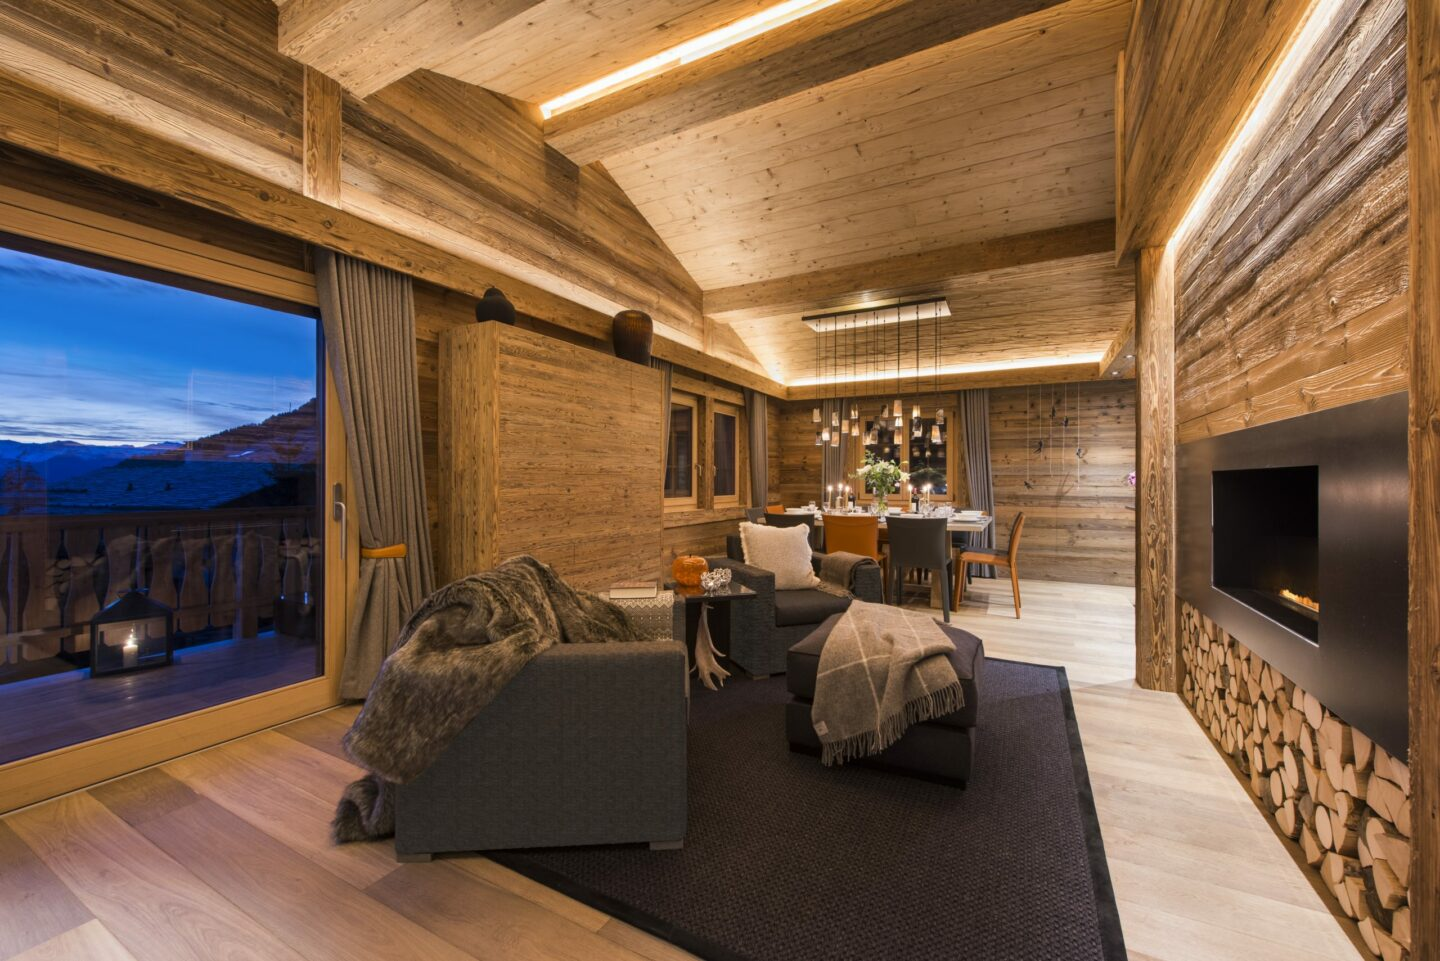 Cozy open fire at Chalet Daphne in Verbier